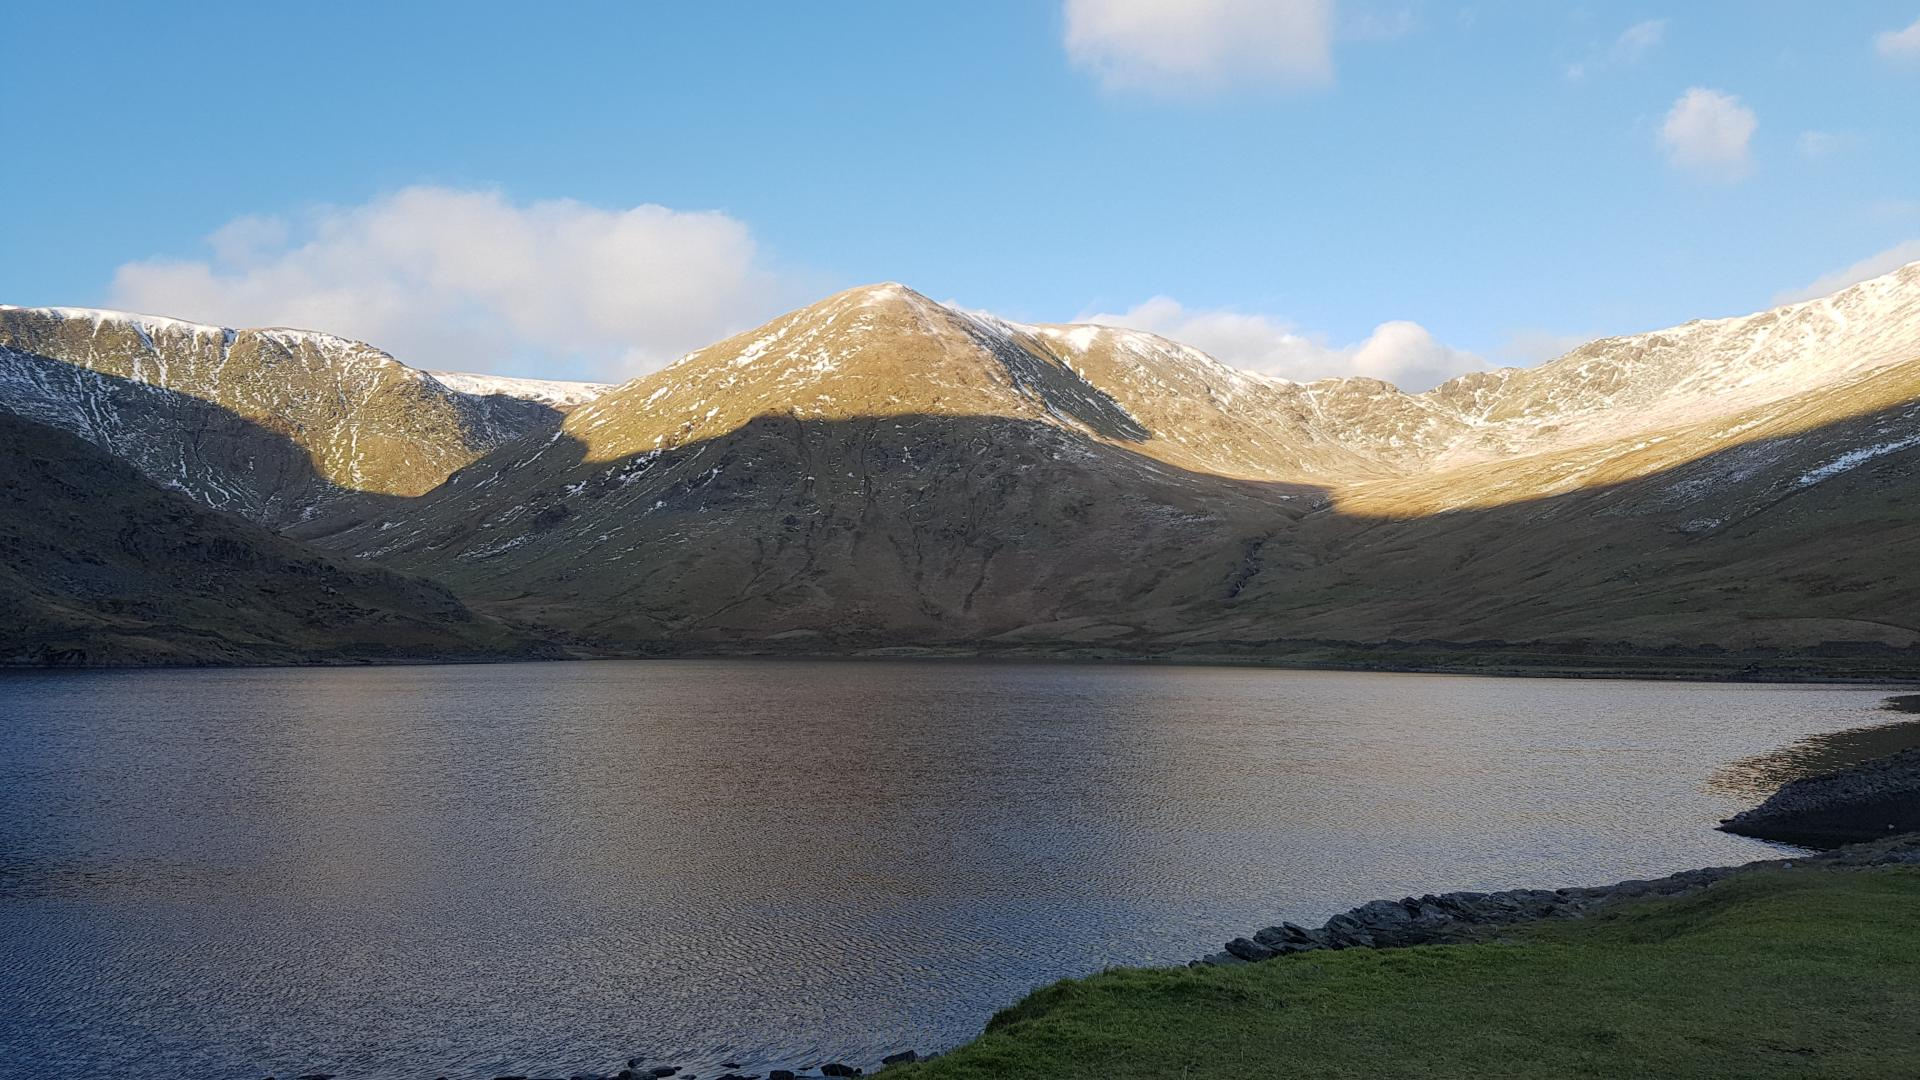 The man-made Kentmere Reservoir